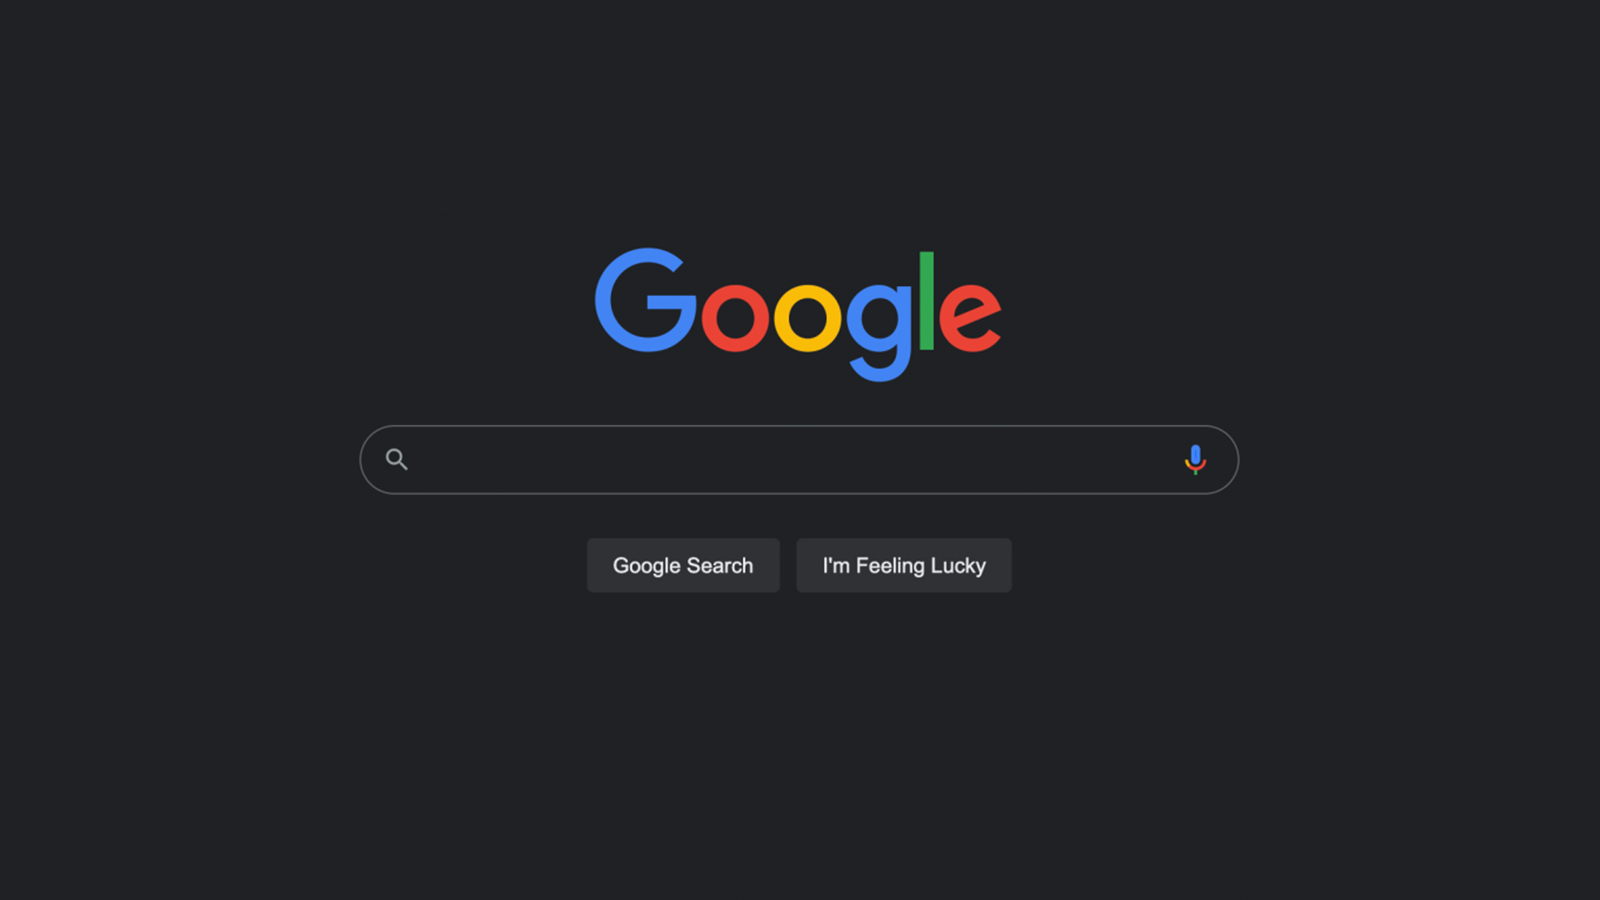 Google Search dark mode is appearing briefly for more users, and it looks promising